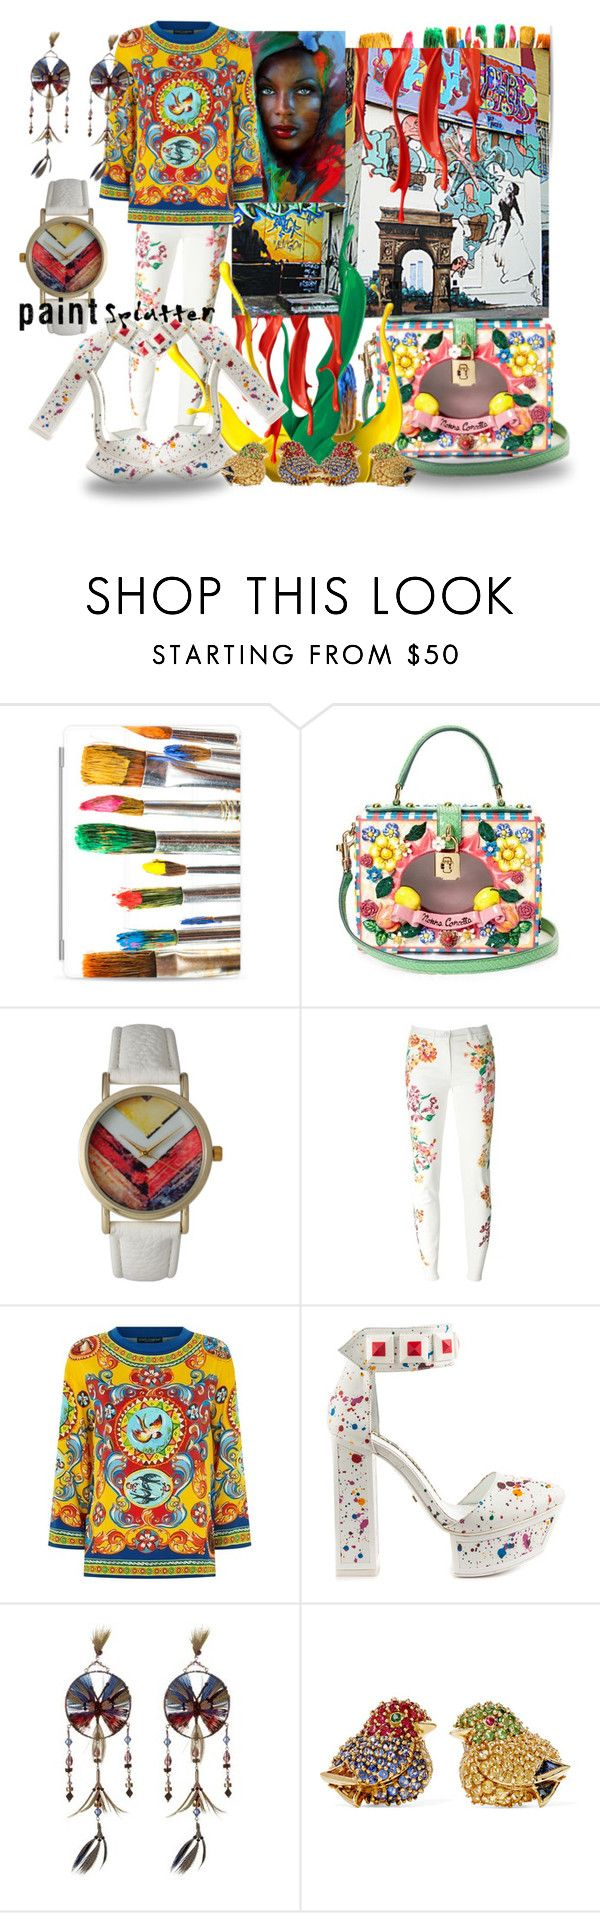 """""""It Was Supposed To Be Called """"Paint The Town Red"""" But It Took A Different Path Than What I Intended"""" by sharee64 ❤ liked on Polyvore featuring Casetify, Dolce&Gabbana, Olivia Pratt, Versace, Kat Maconie, Valentino, Fred Leighton and paintsplatter"""